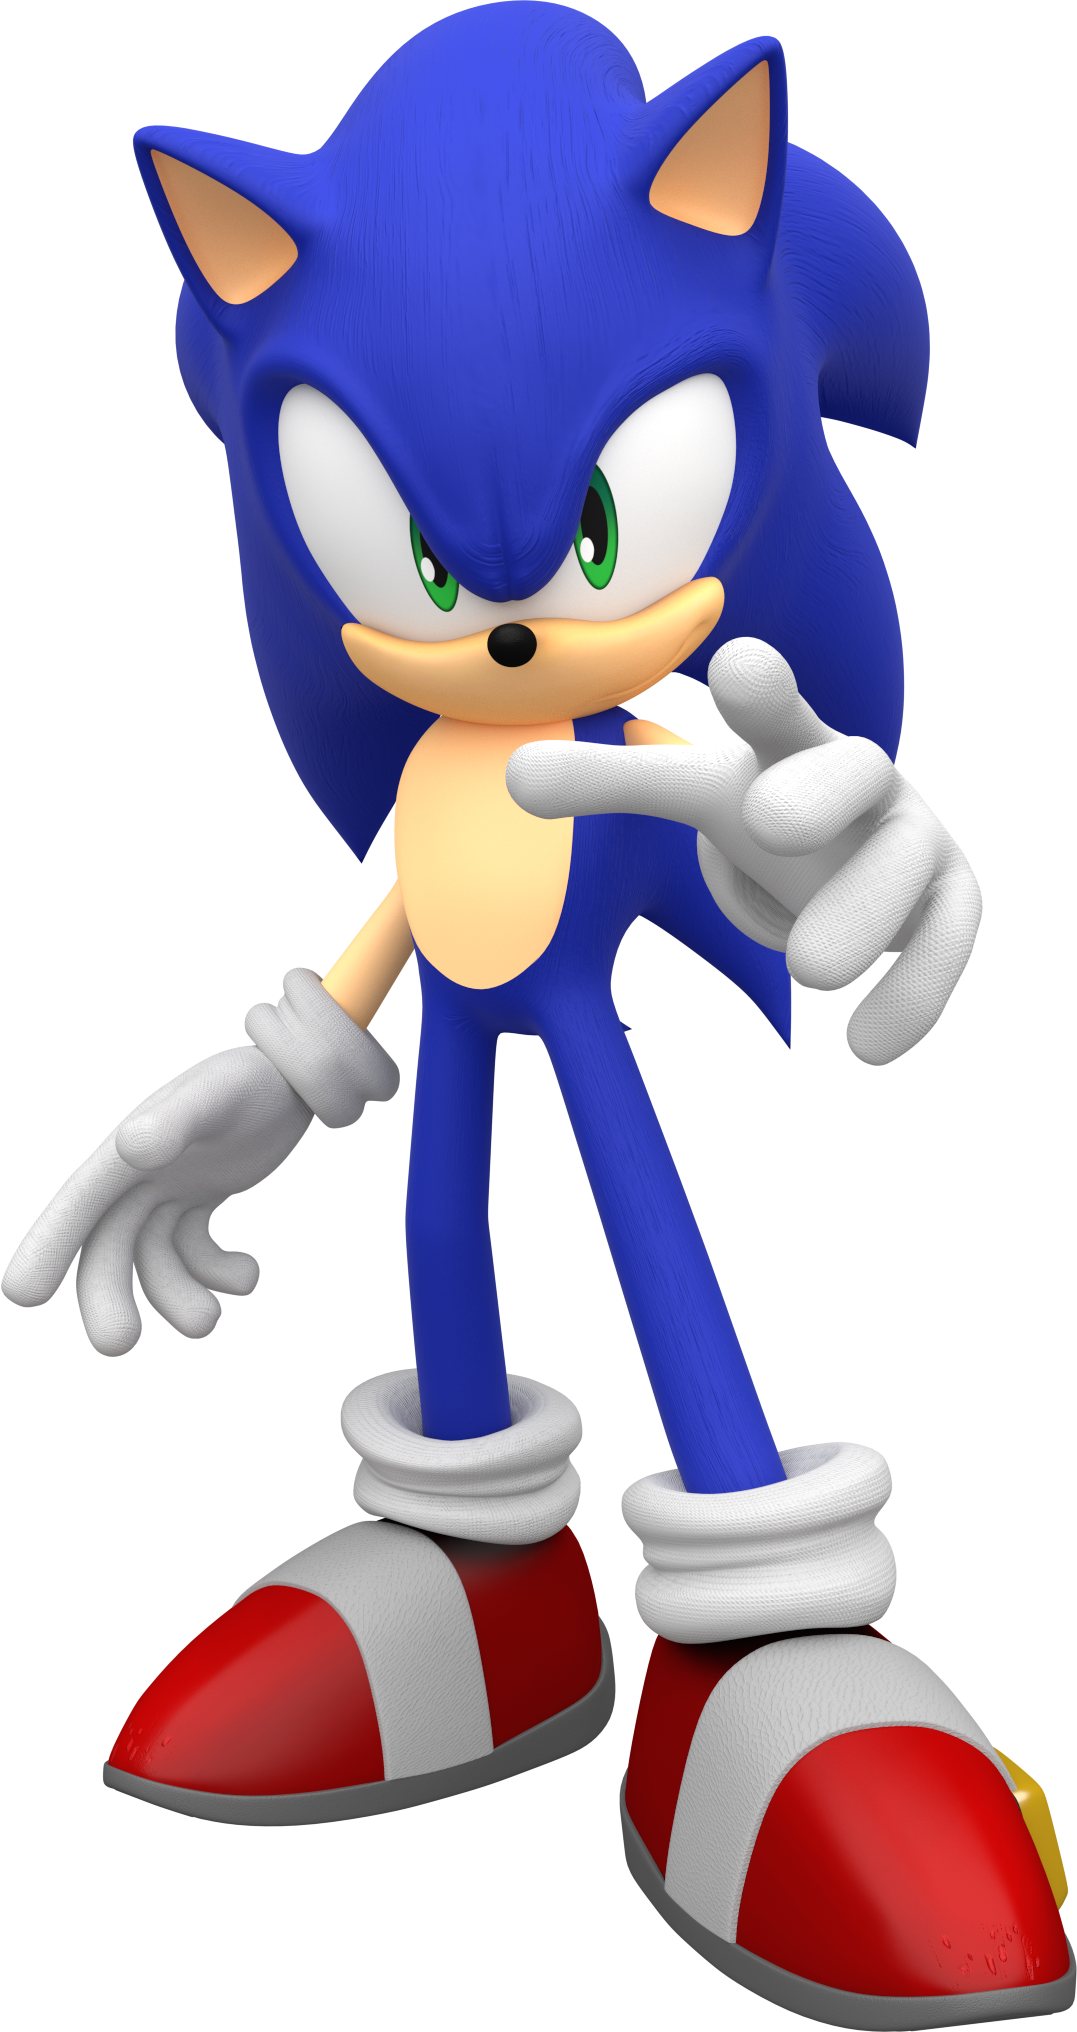 sonic the hedgehog character videogaming wiki fandom powered